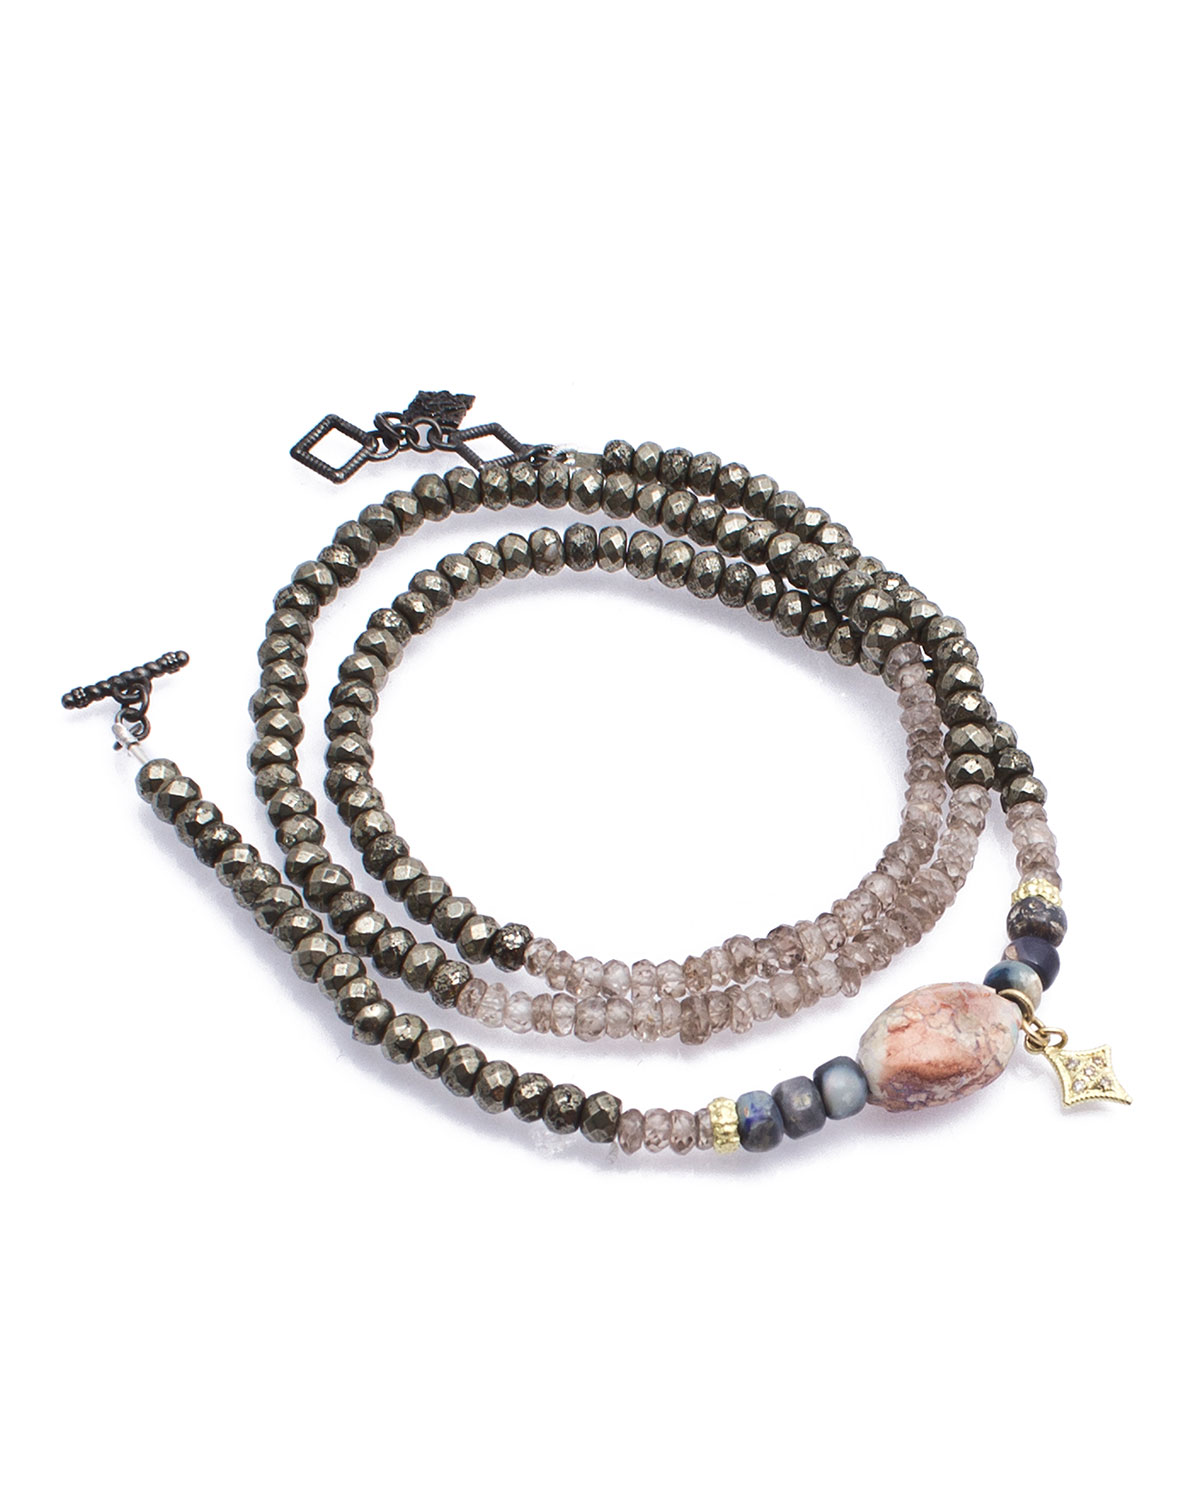 Old World Triple Wrap Pyrite Zircon Boulder Opal Bead Bracelet